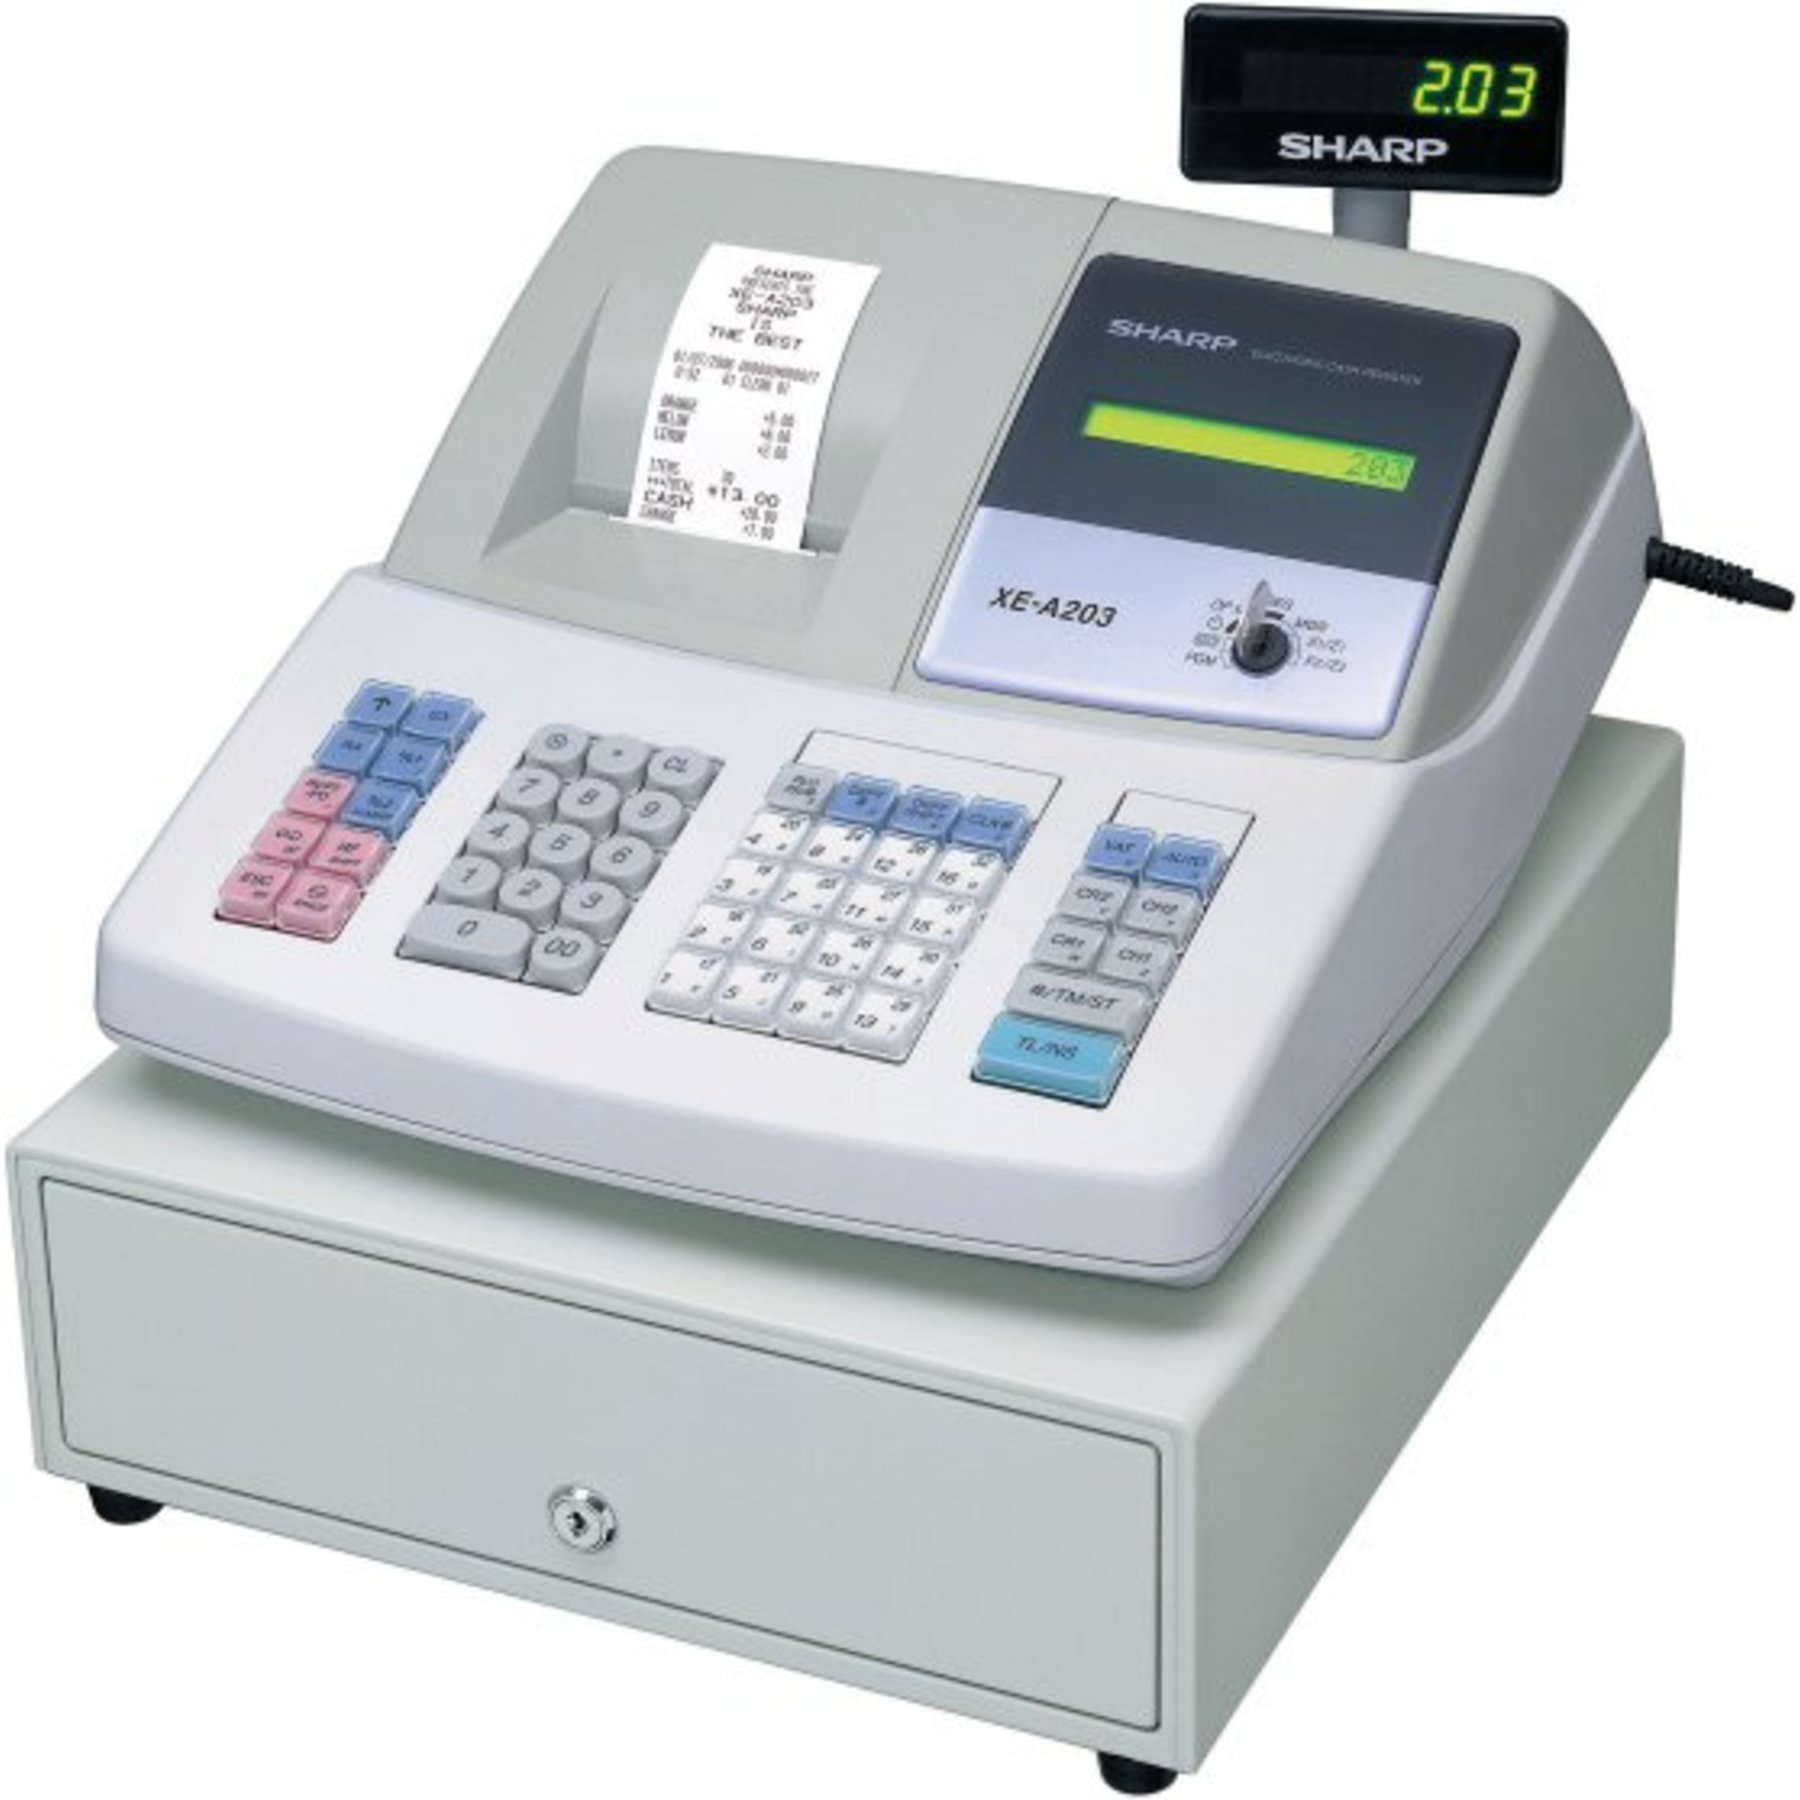 sharp xe a206. sharp xe a203 cash register thermal printing graphic logo a206 d